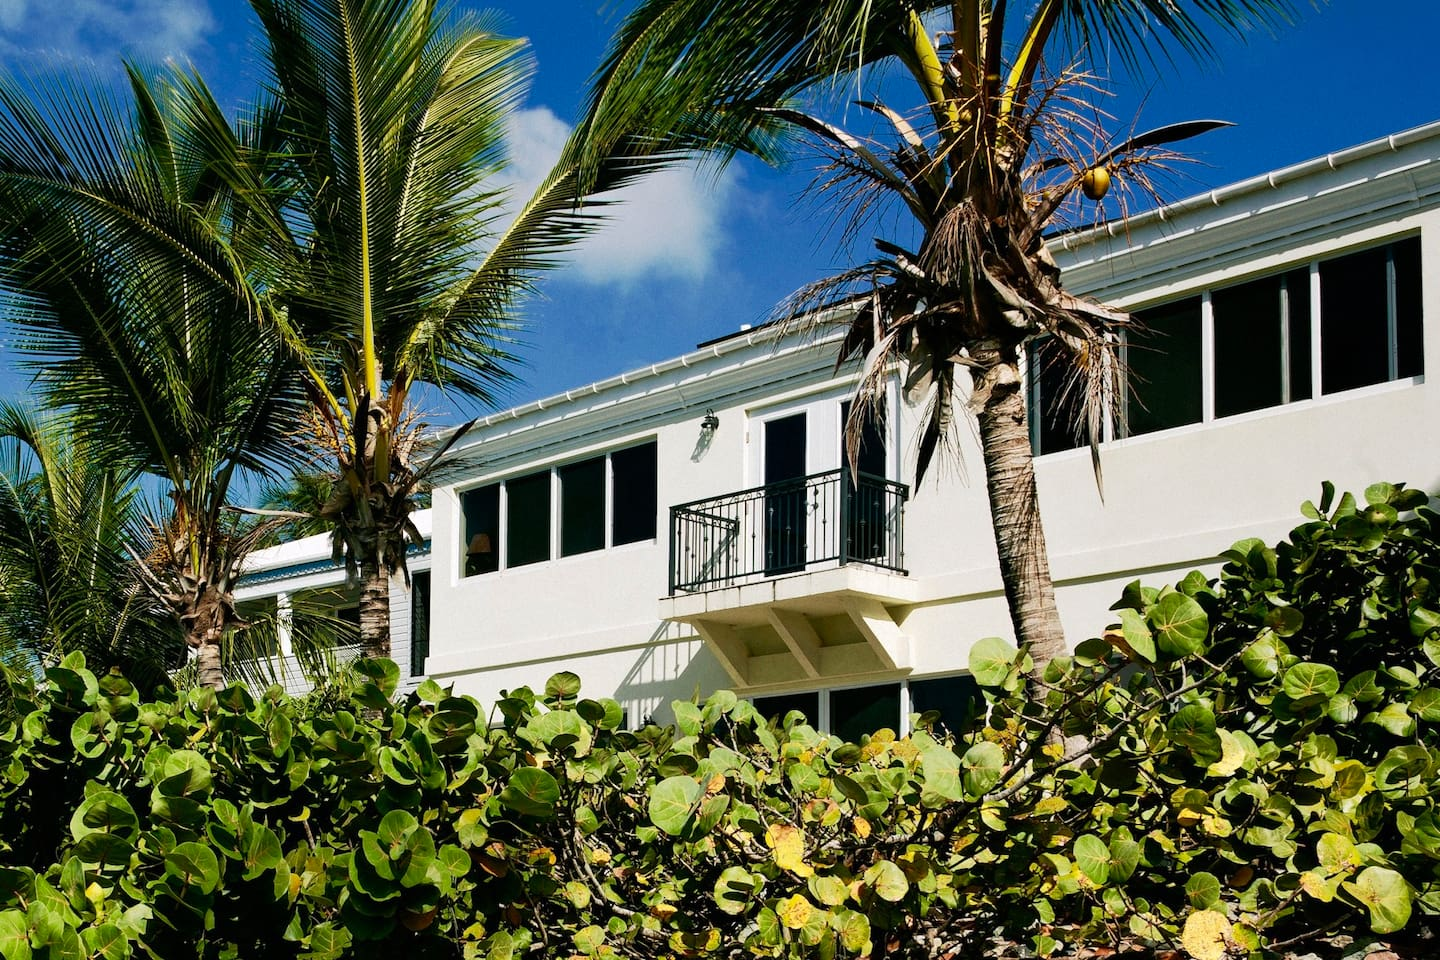 Three Palms is an exceptional waterfront two story Villa. We are walking distance to Cruz Bay shopping and restaurants. Stay near the trail head to National Park beaches Honeymoon and Solomon Bay. Vacation in a beautiful elegant home that provides everything you need to experience your St. John adventure.